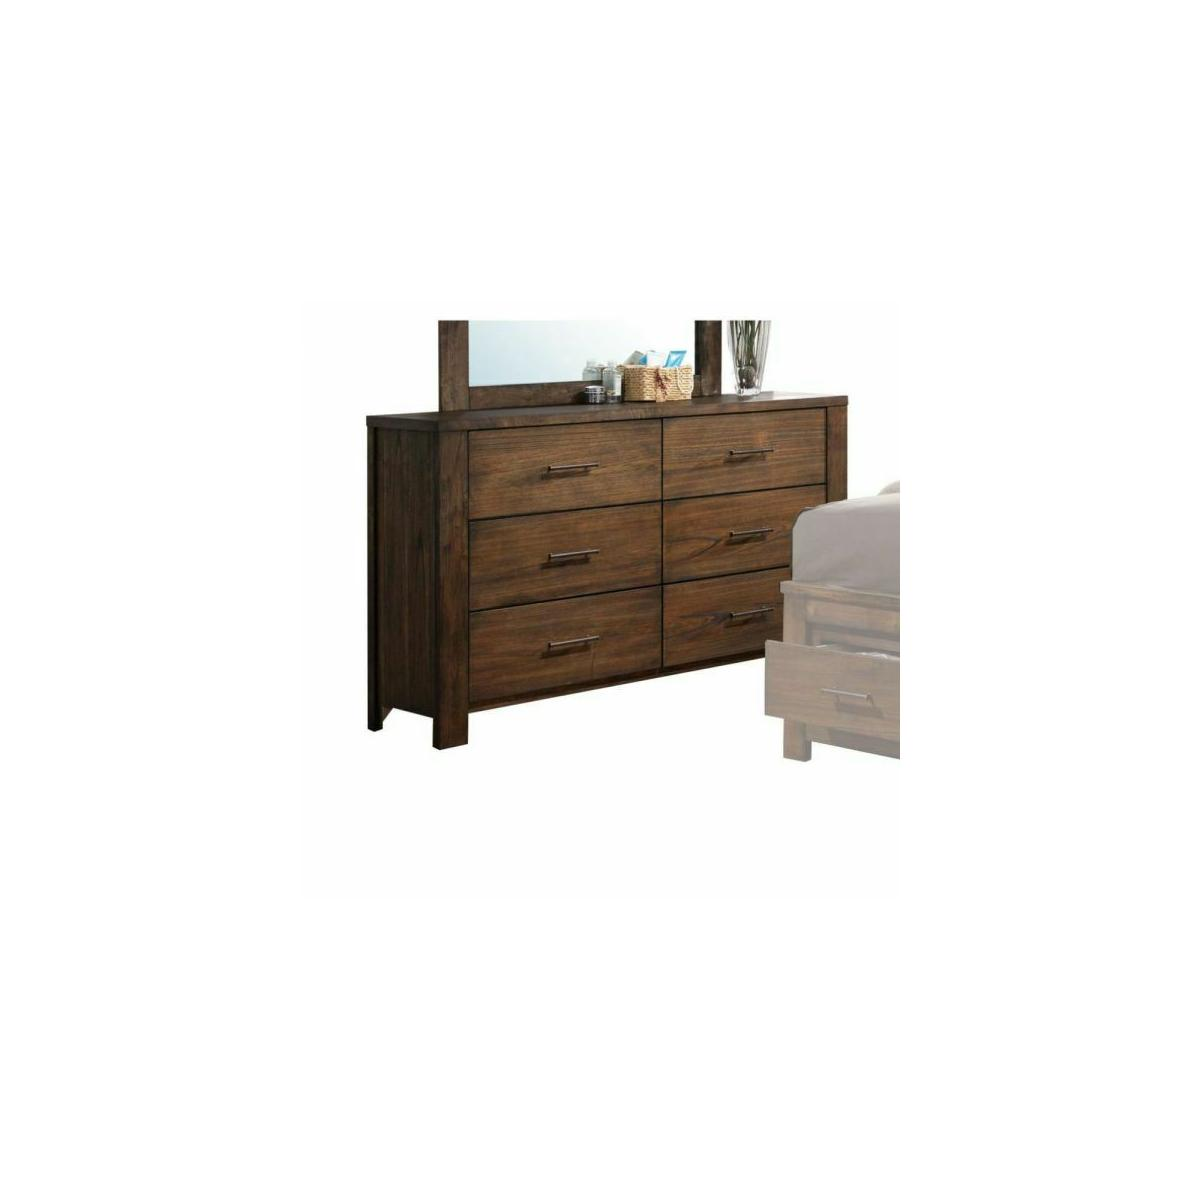 ACME Merrilee Dresser - 21685 - Oak